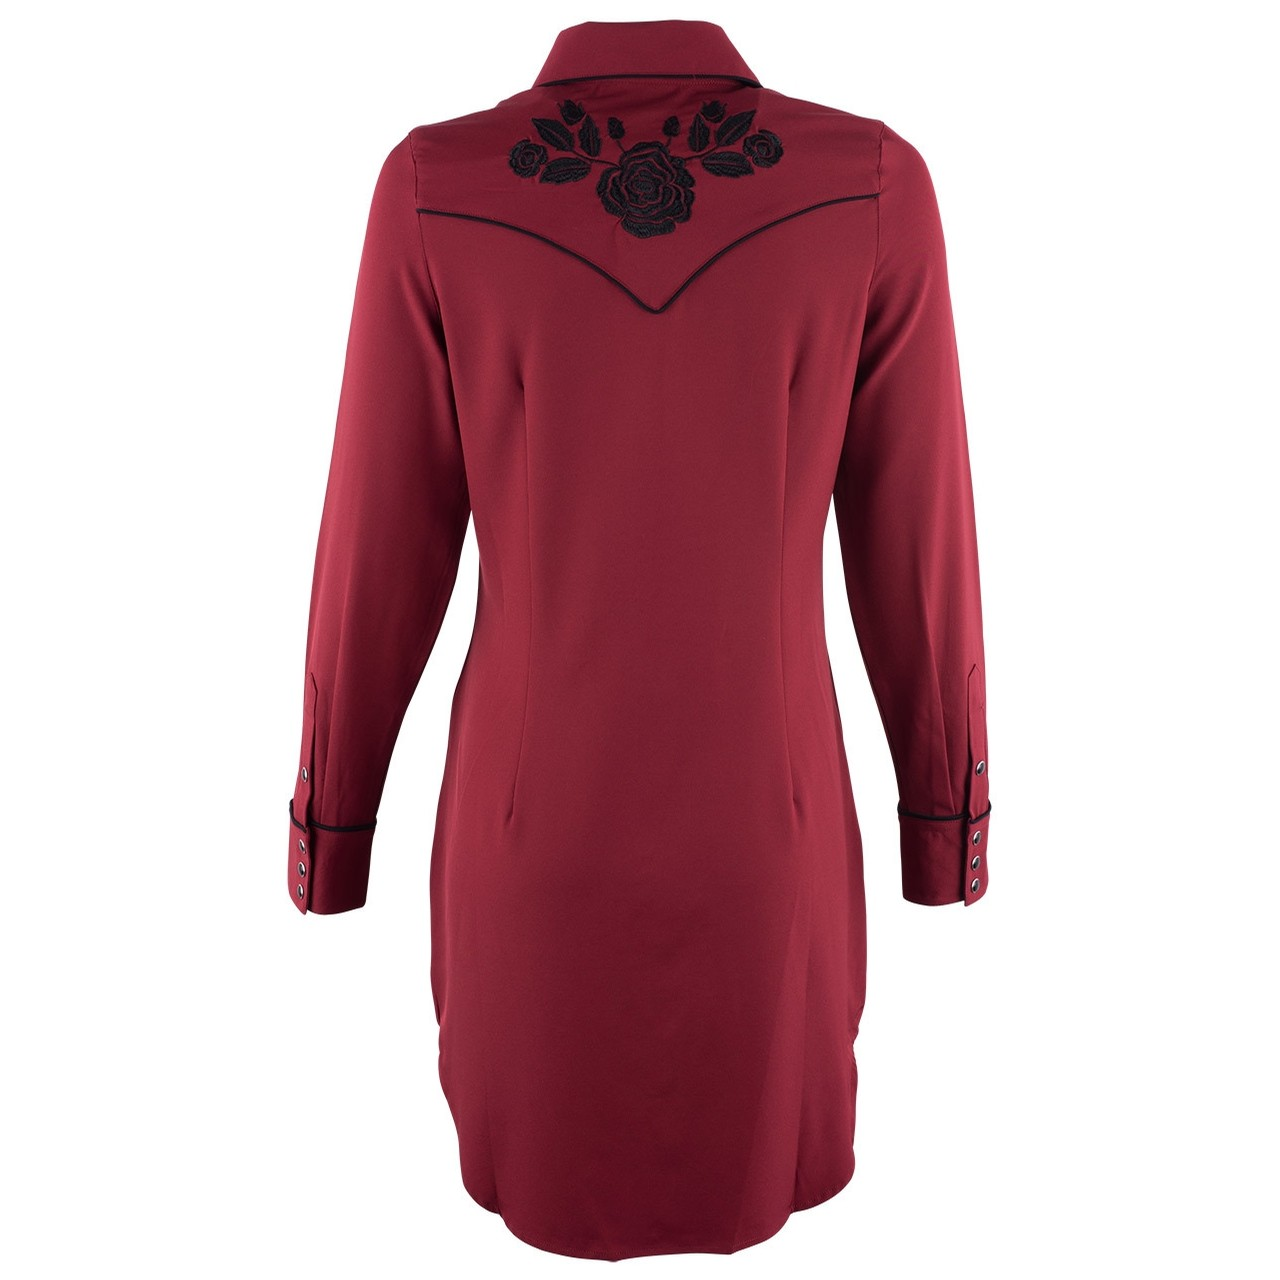 Roper Women's Retro Dress With Embroidery